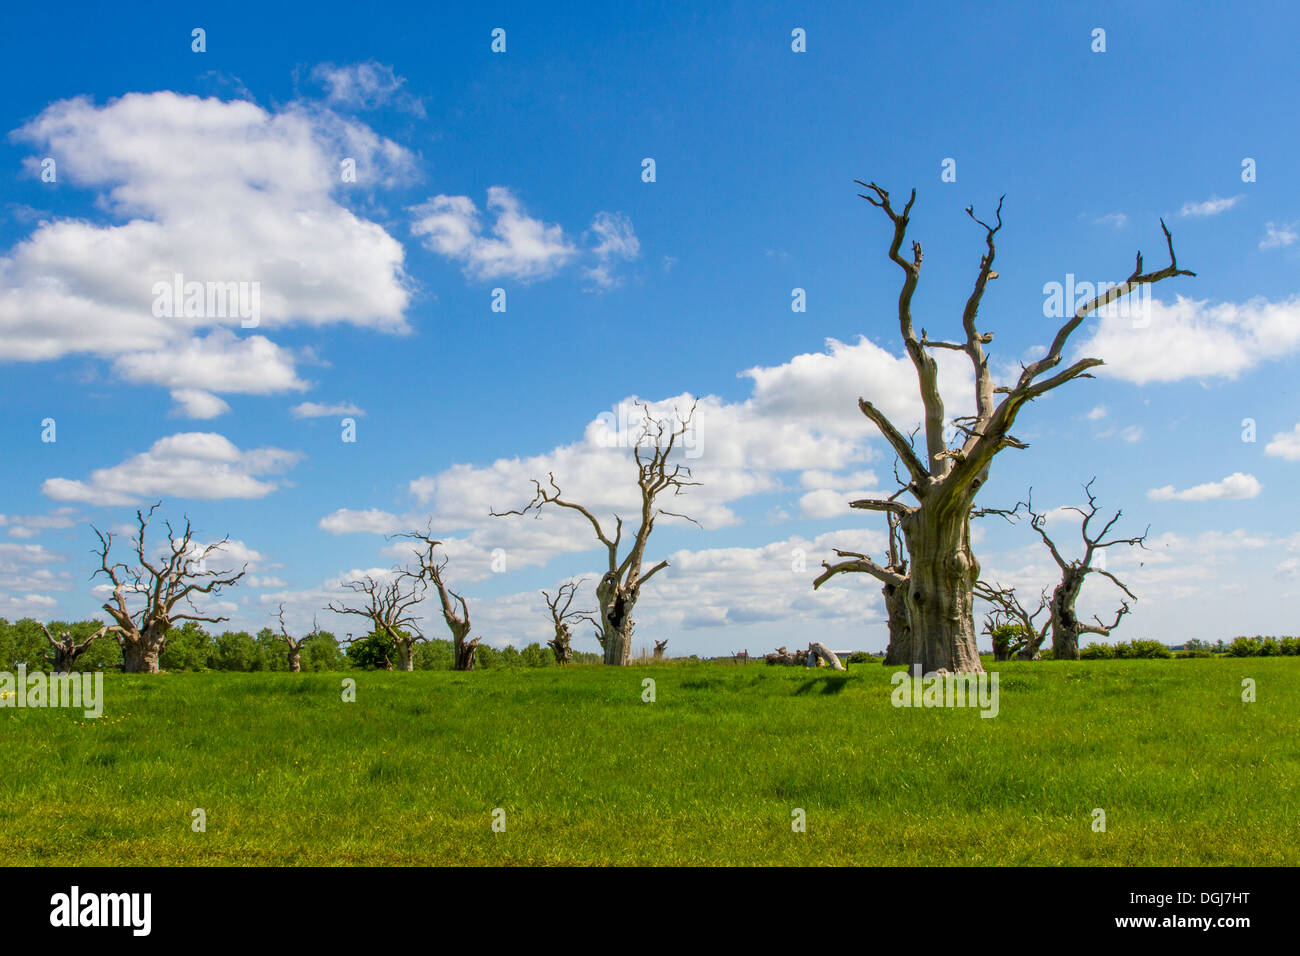 The so called petrified forest at Mundon in Essex. - Stock Image